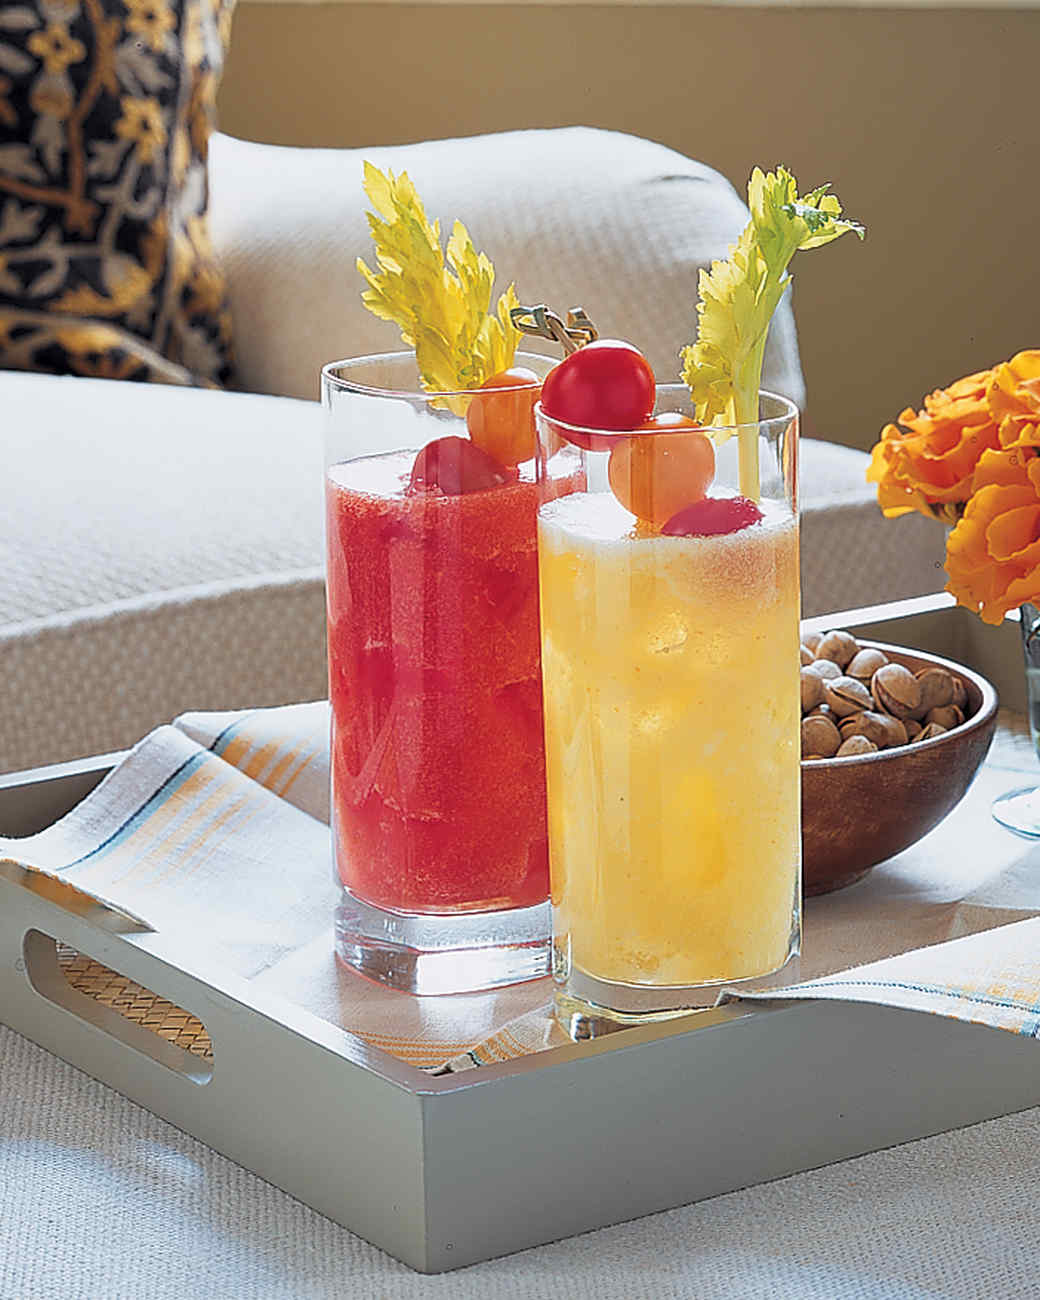 yellow-tomato-bloody-mary-a102240.jpg